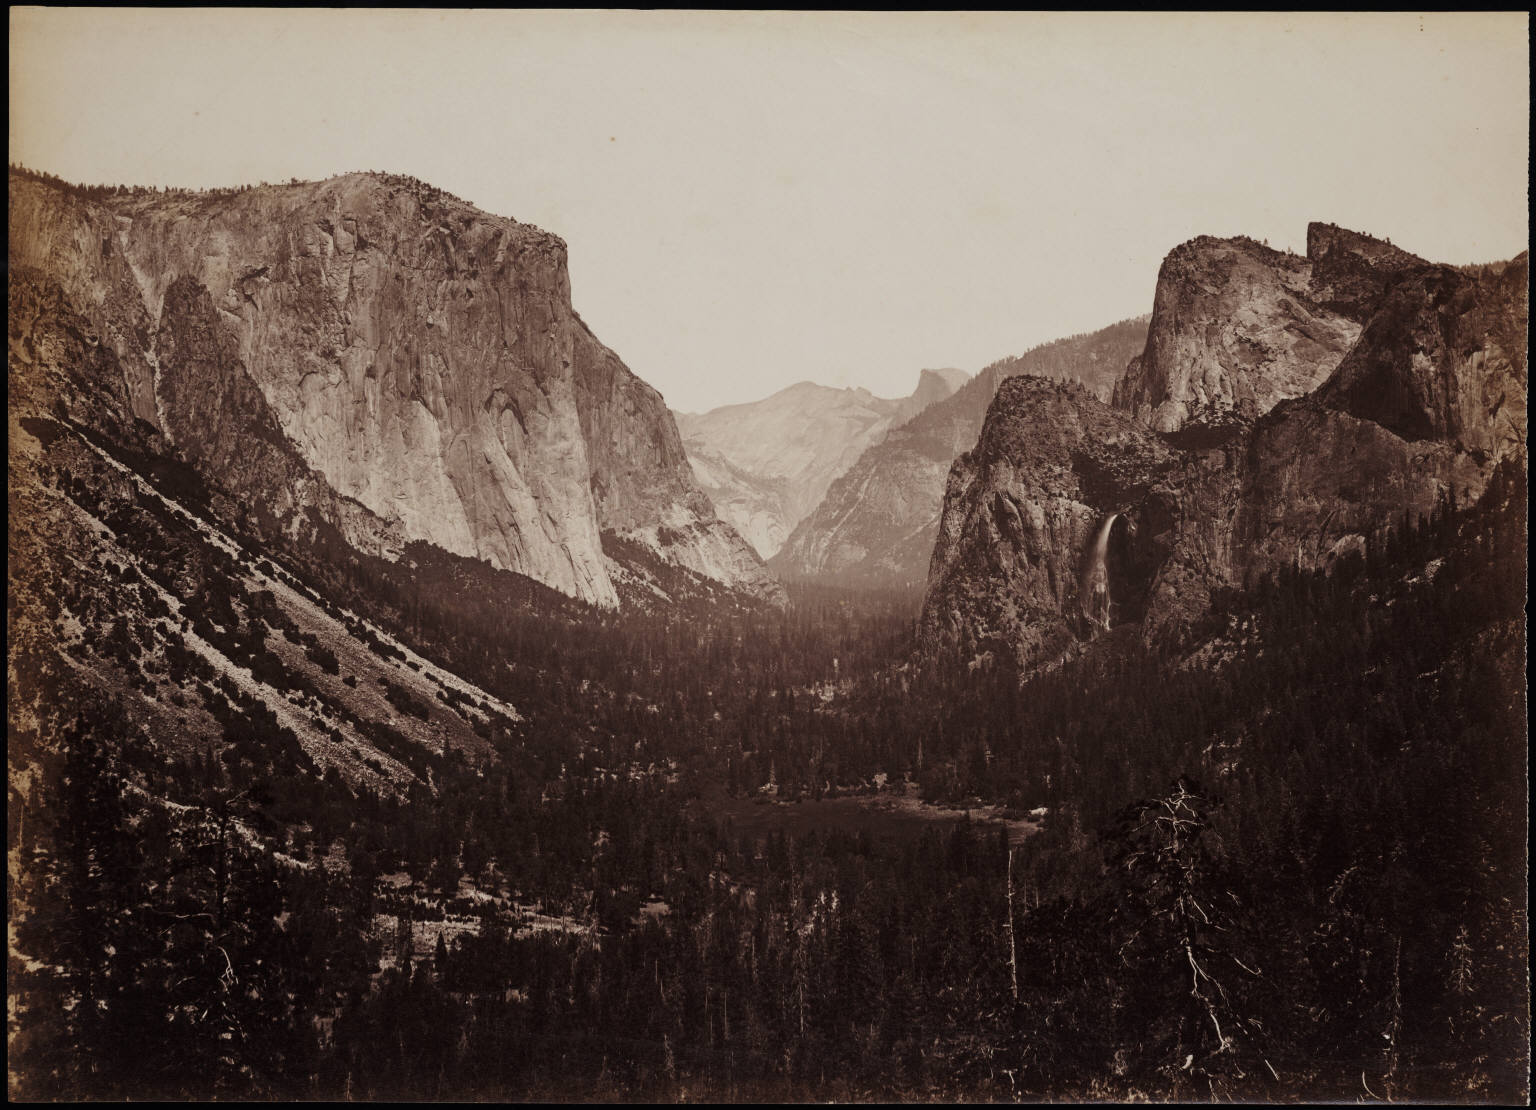 The_Yosemite_Valley_From_The_Mariposa_Trail_Yosemite_California_by_Carleton_Watkins.jpg